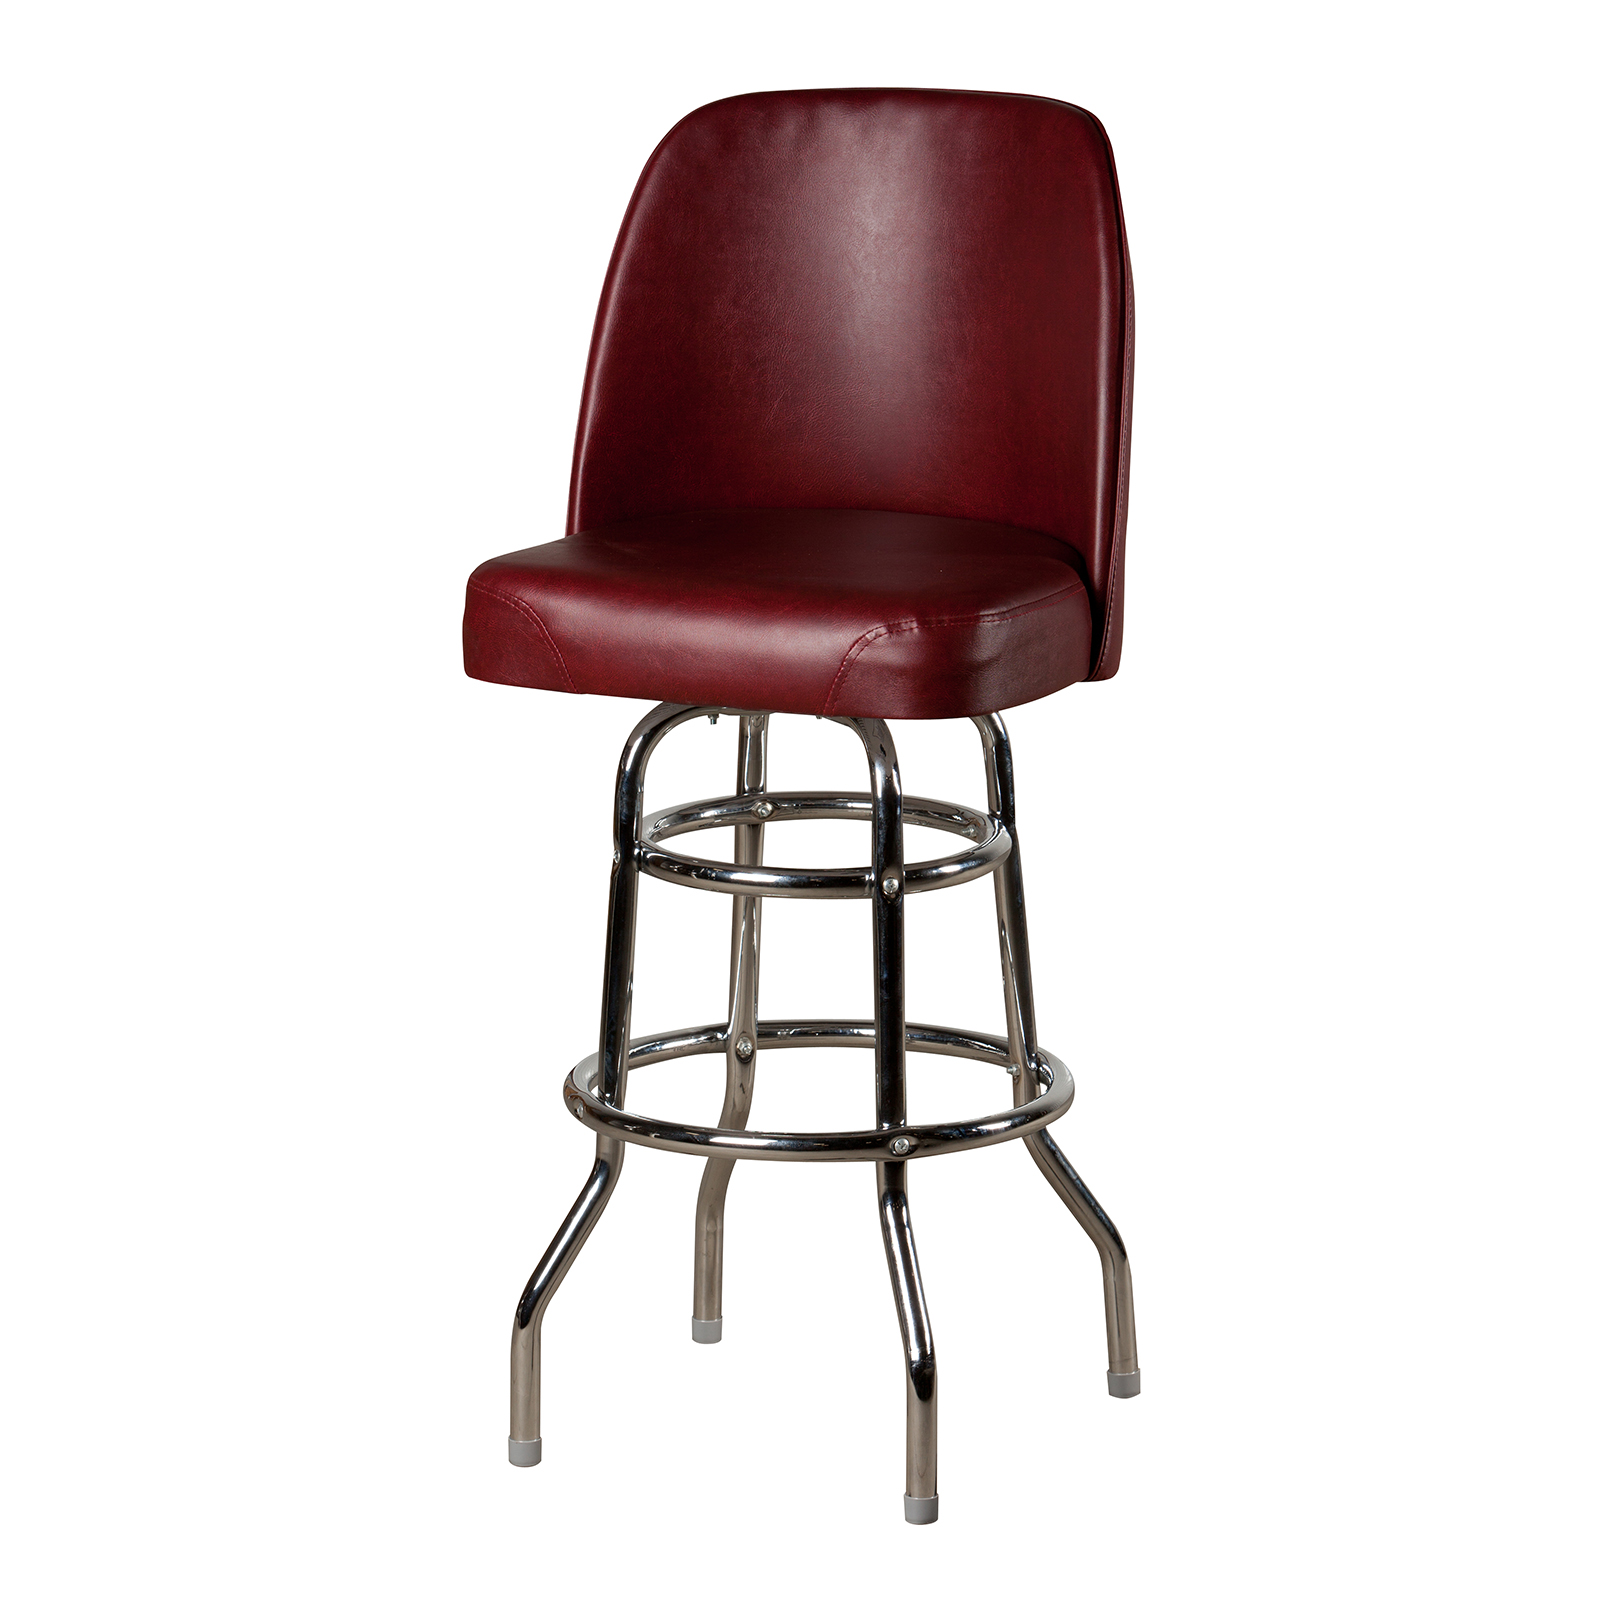 Oak Street SL3134-WINE bar stool, swivel, indoor